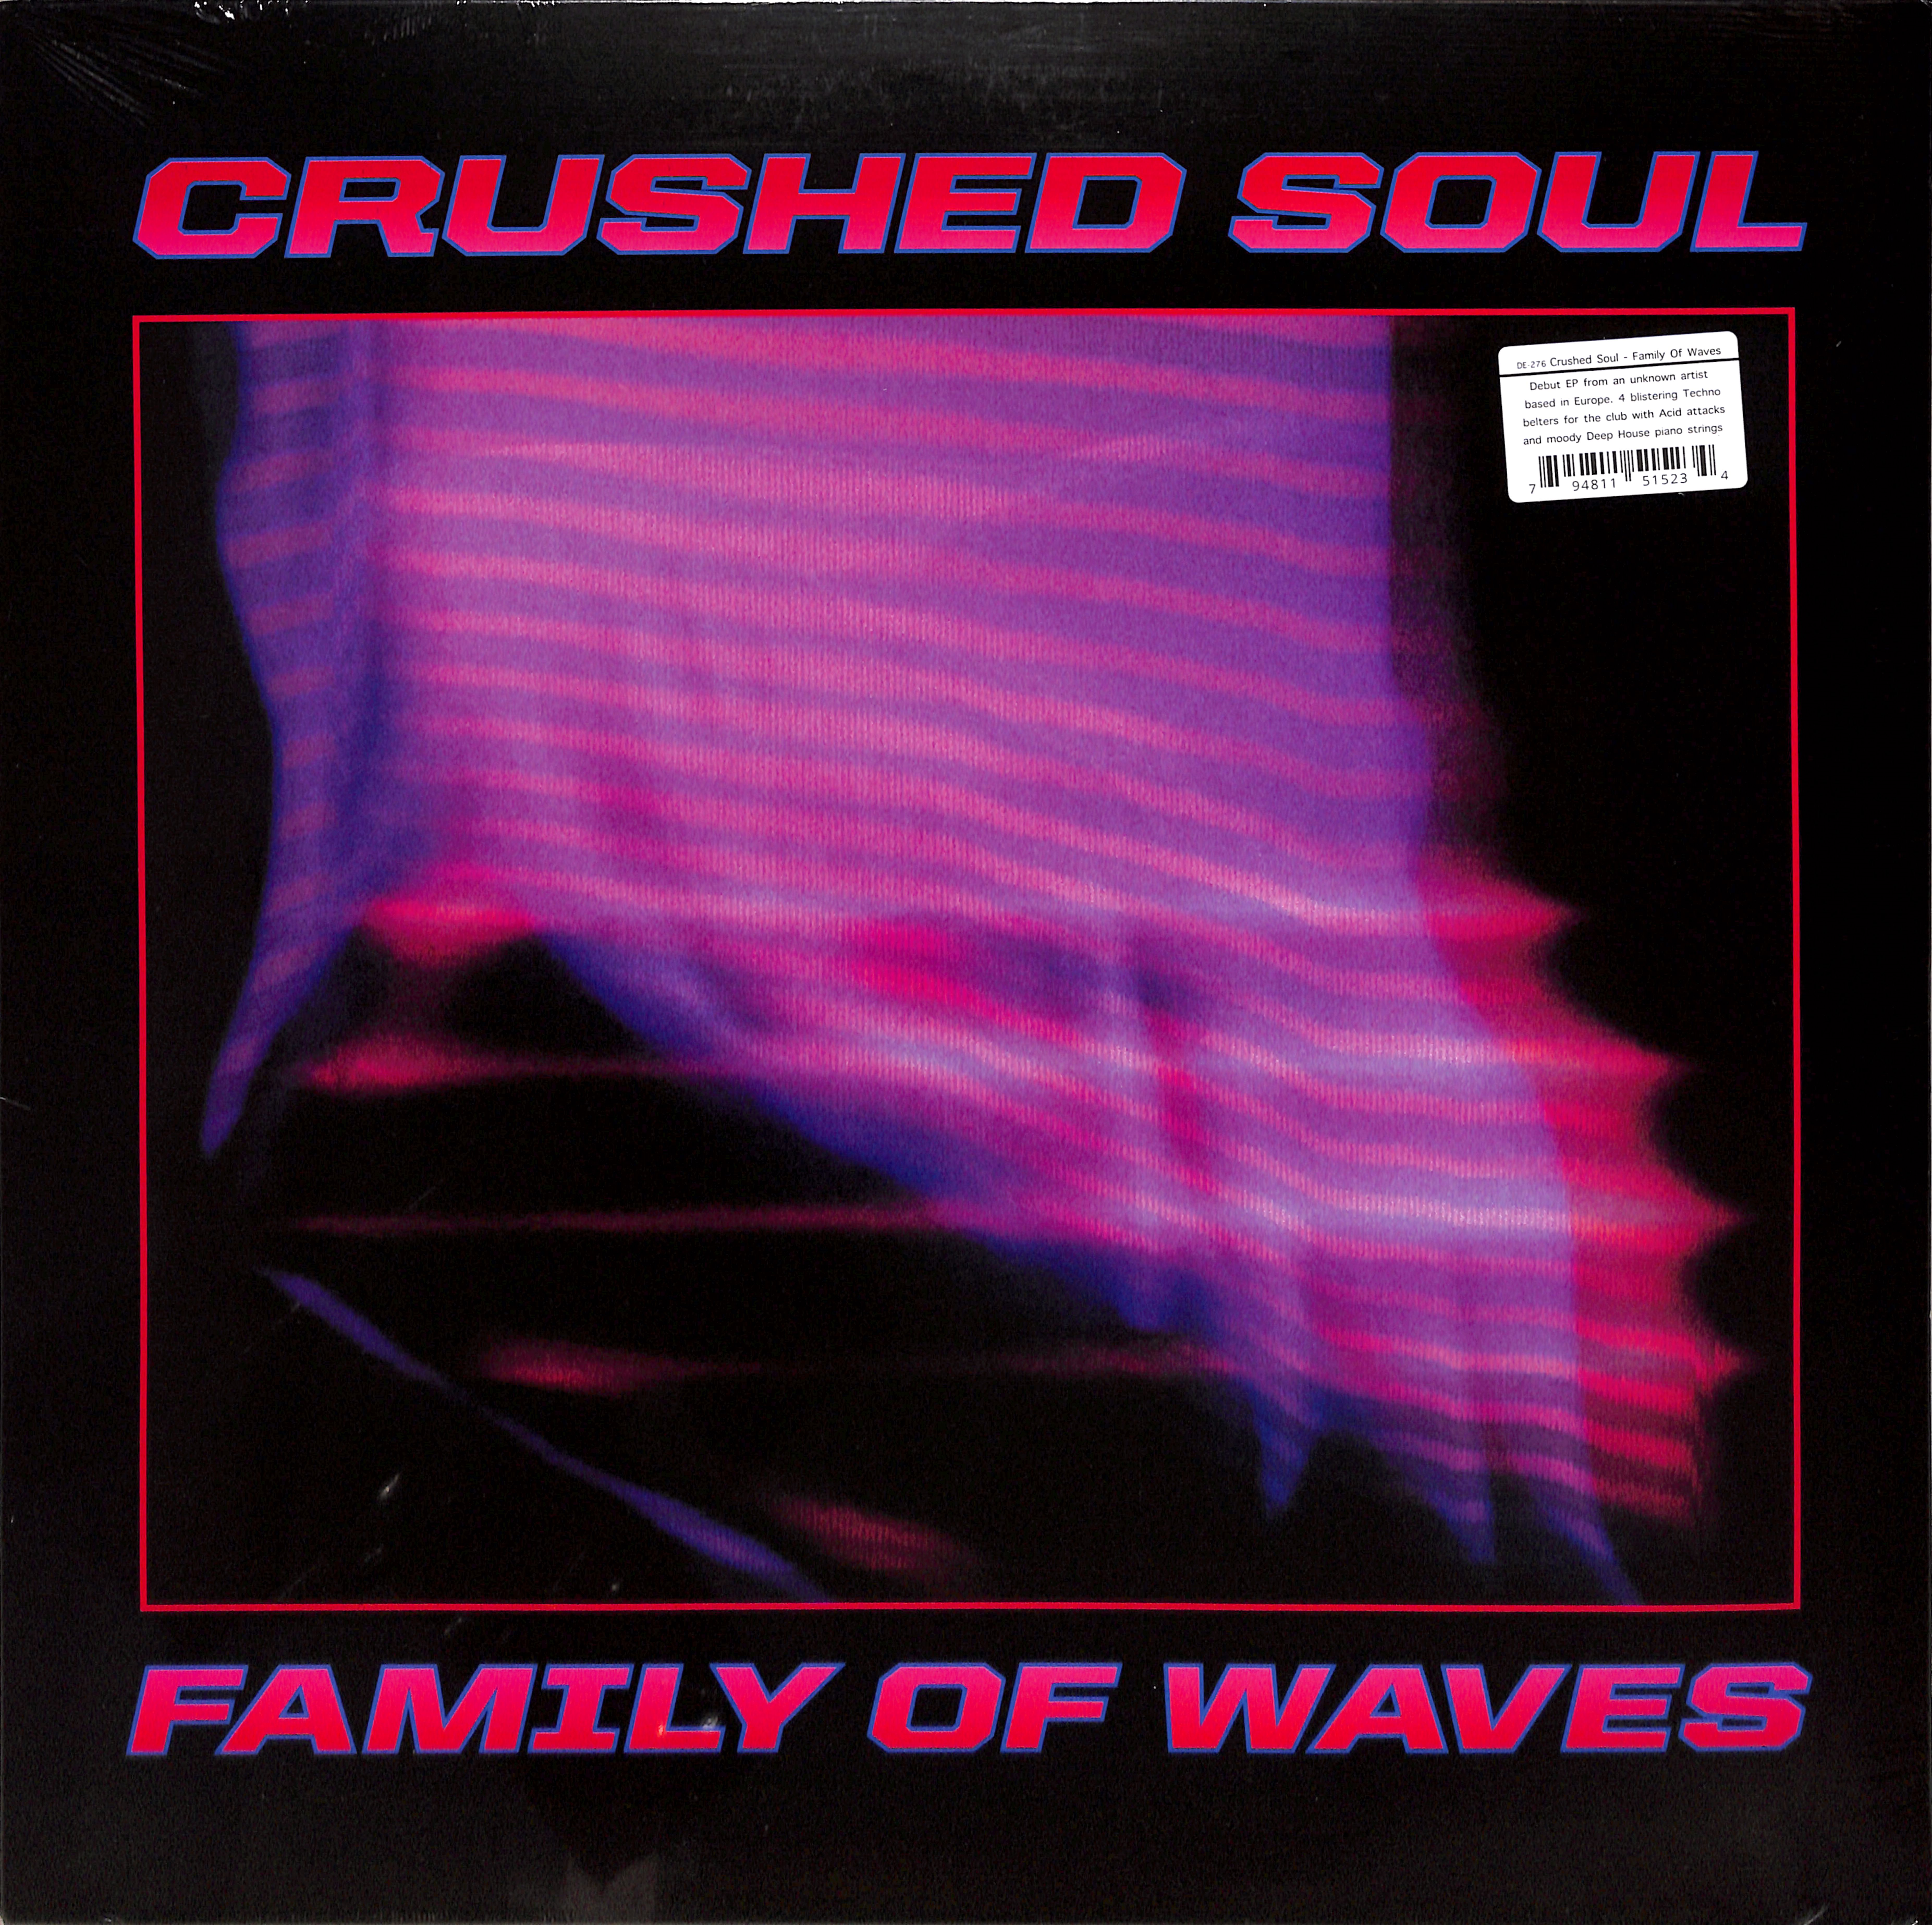 Crushed Soul aka Steffi - FAMILY OF WAVES EP